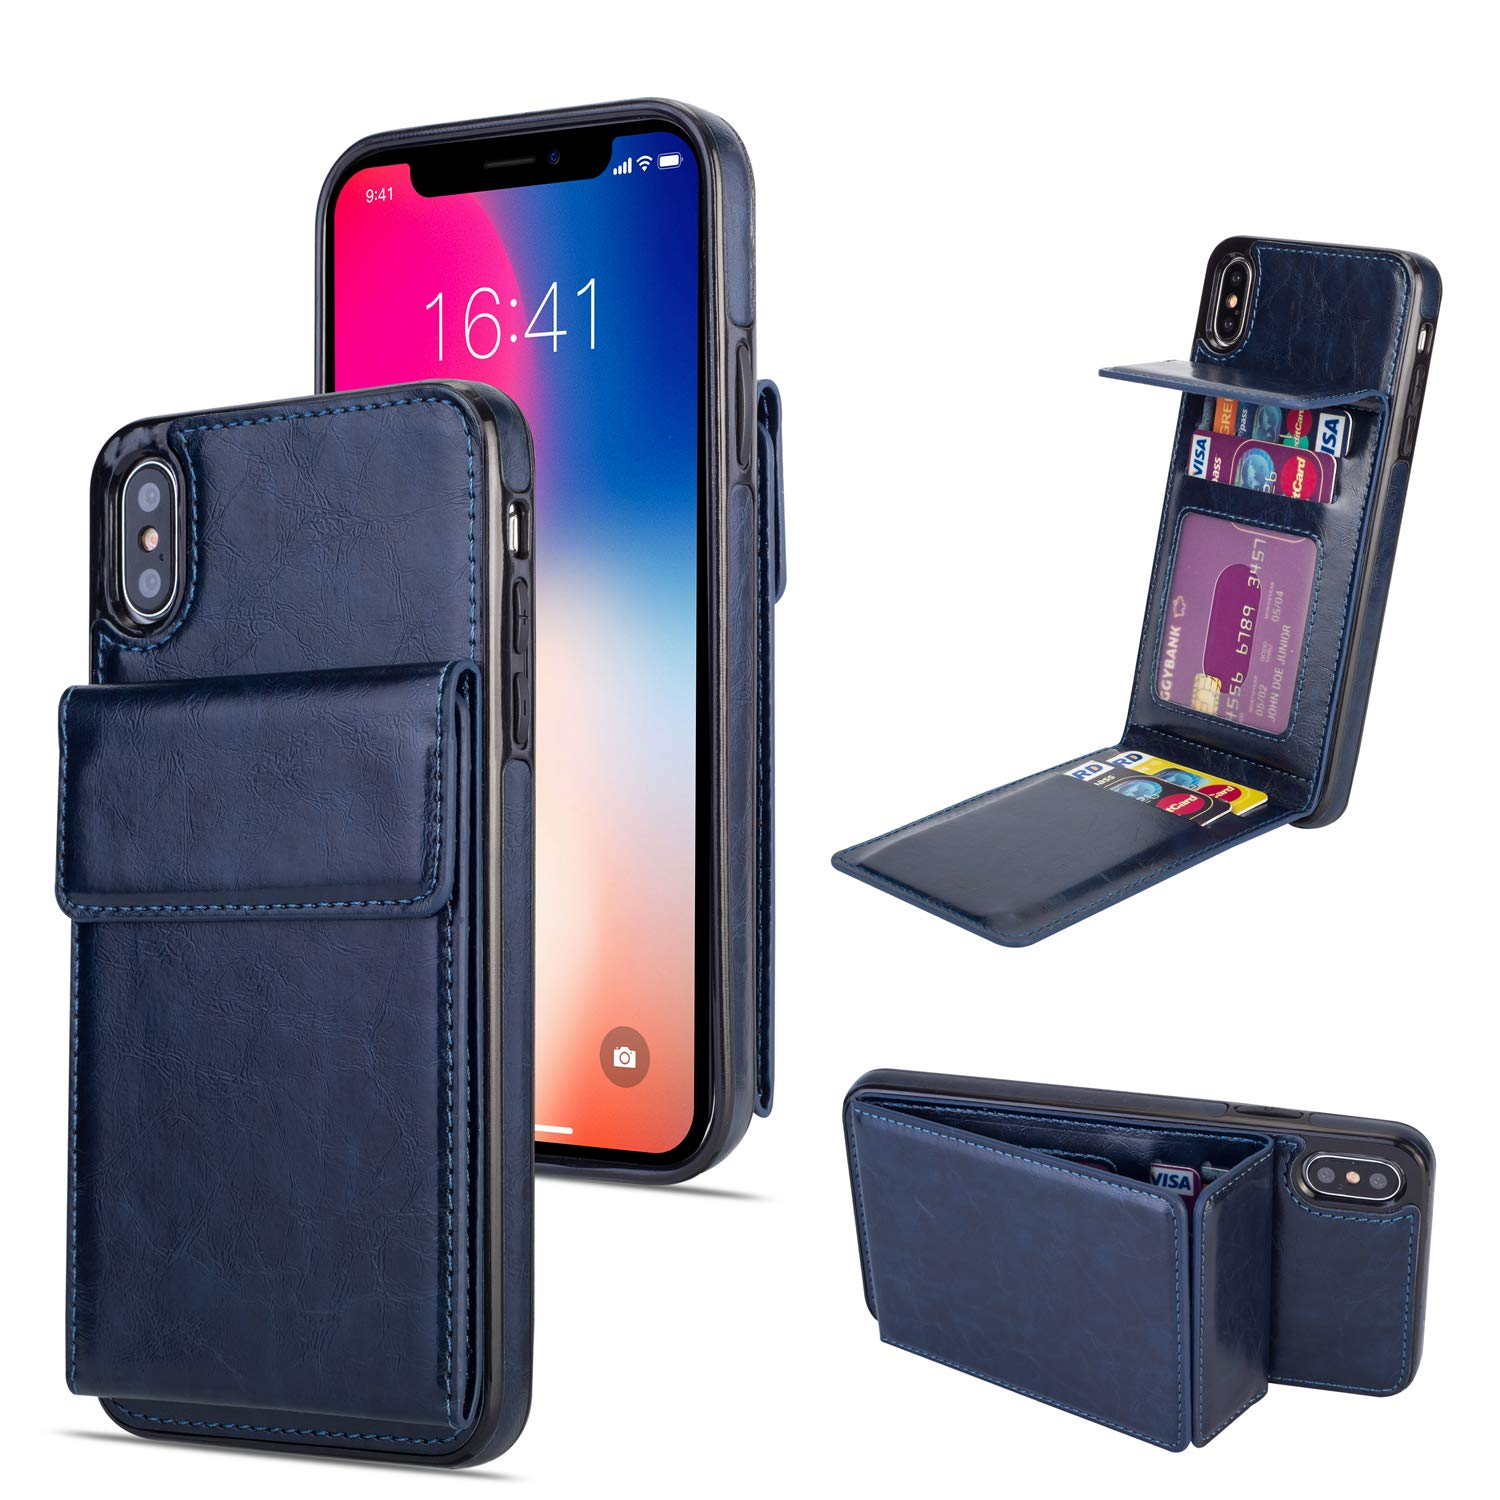 DAMONDY Wallet Case for iPhone Xs Max,Luxury Wallet Purse Card Holders Design Cover Soft Shockproof Bumper Folio Flip Leather Kickstand Case for iPhone Xs Max (2018) 6.5 Inch-deep Blue by DAMONDY